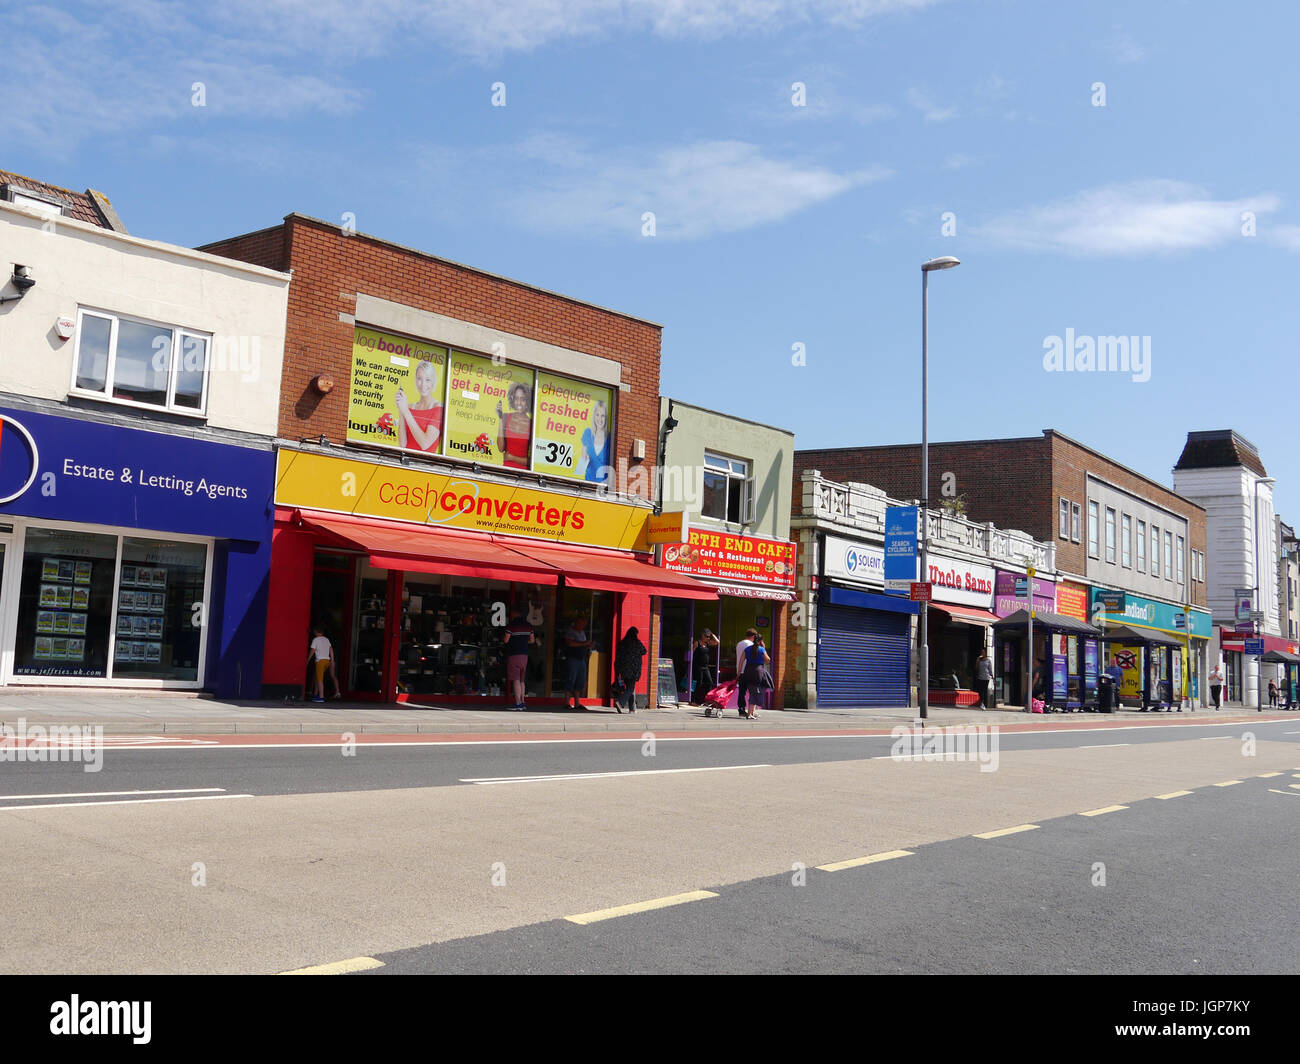 North end high street in Portsmouth, England - Stock Image